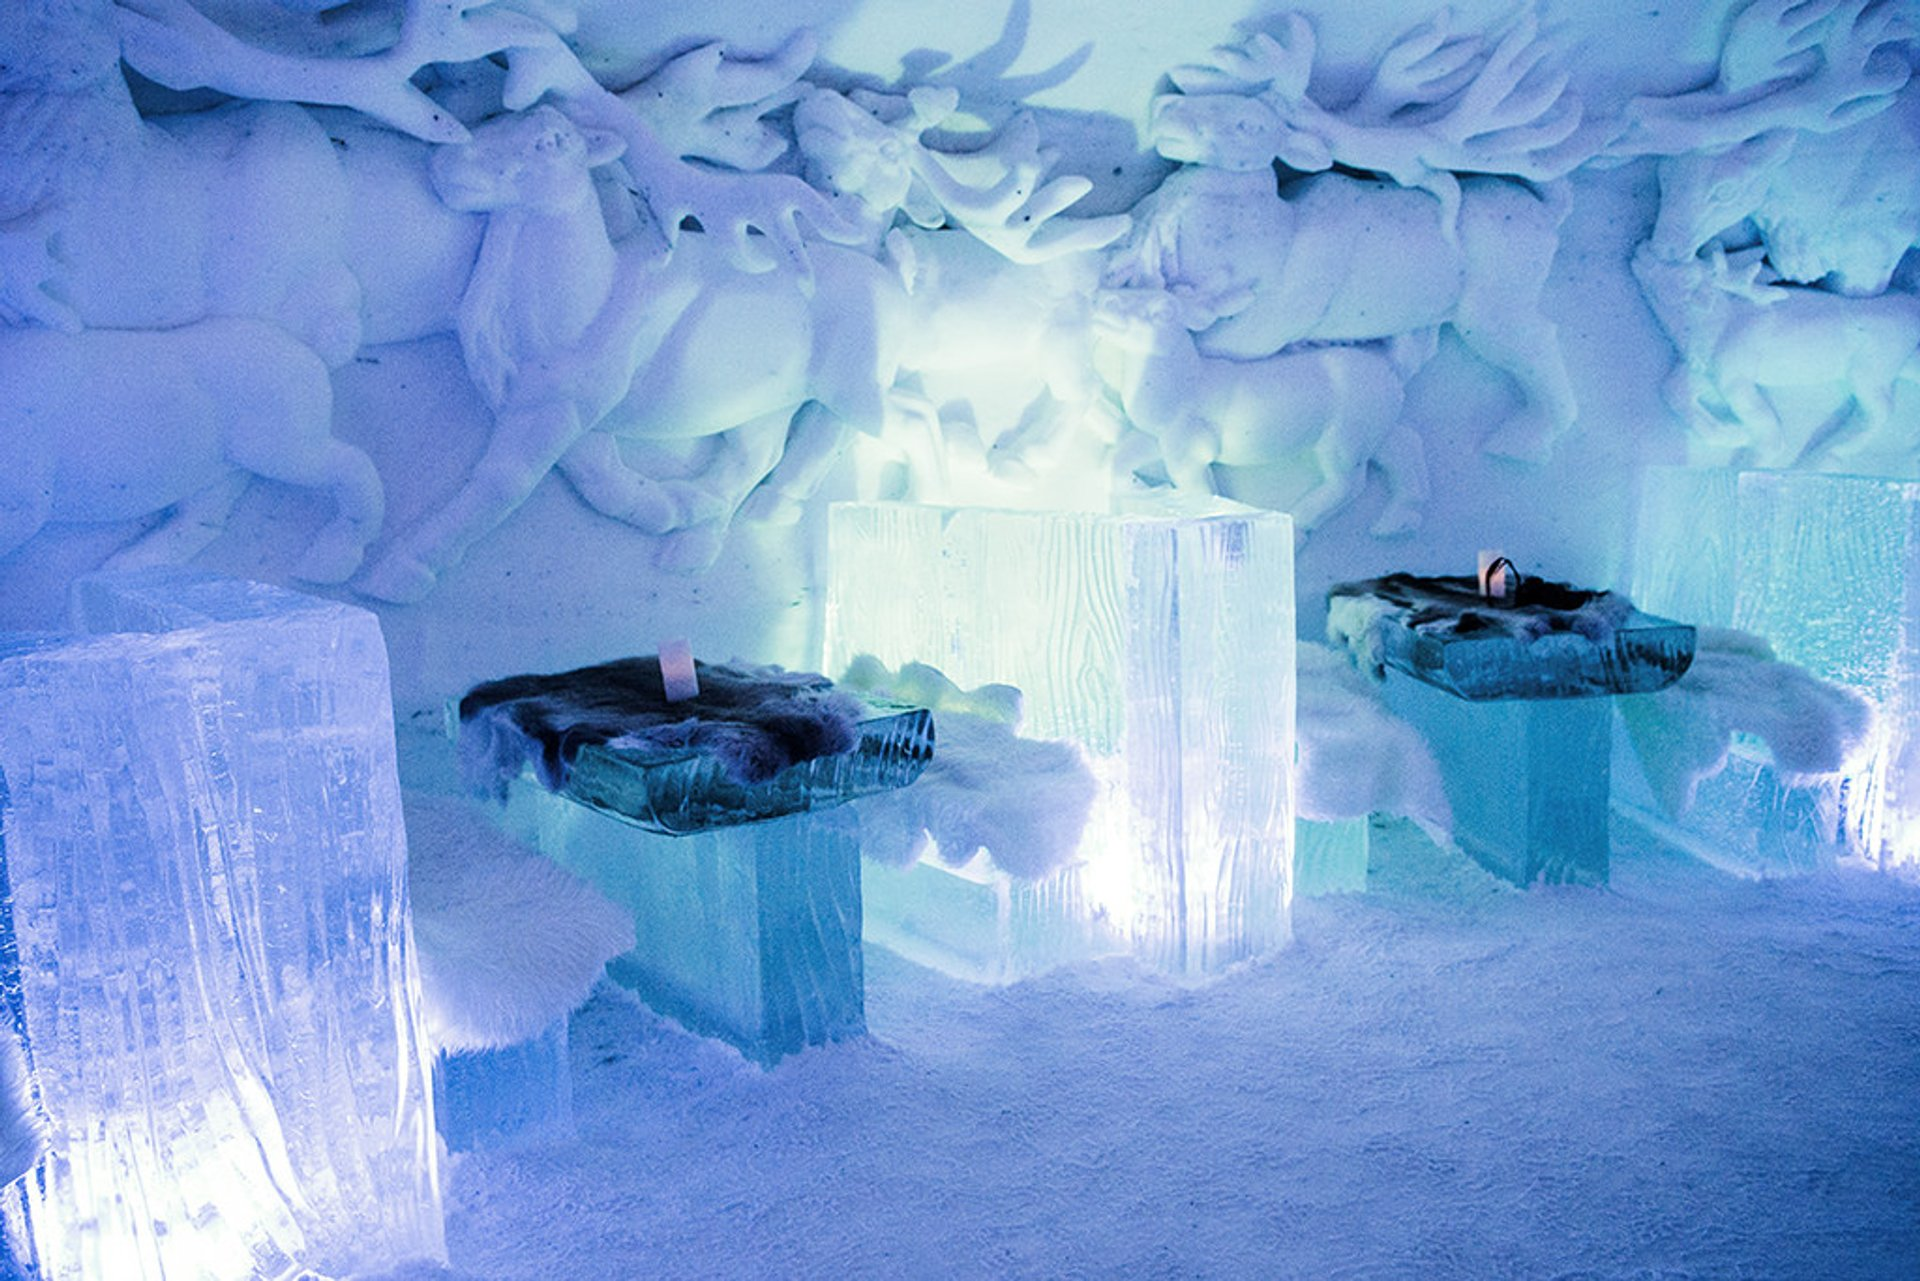 Kirkenes Snow Hotel in Norway 2020 - Best Time